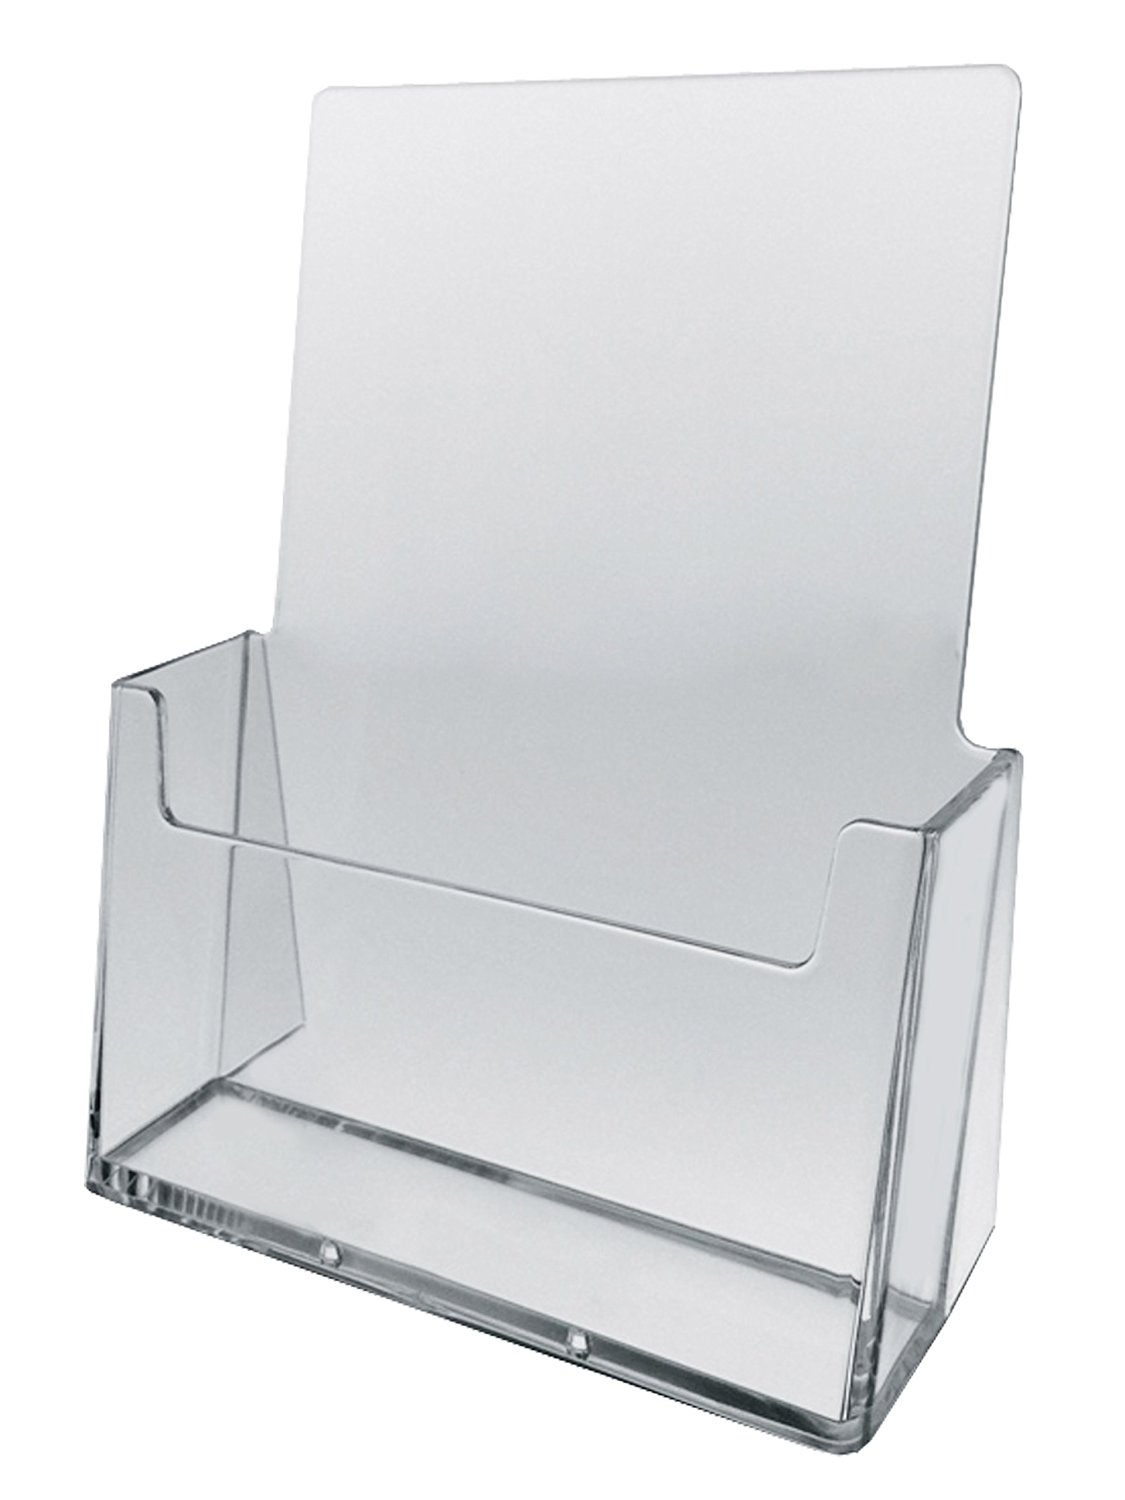 Marketing Holders Brochure or Literature Holder Clear Acrylic Design Holds 8.5x11 Full Page Literature - Sold in Lots of 25